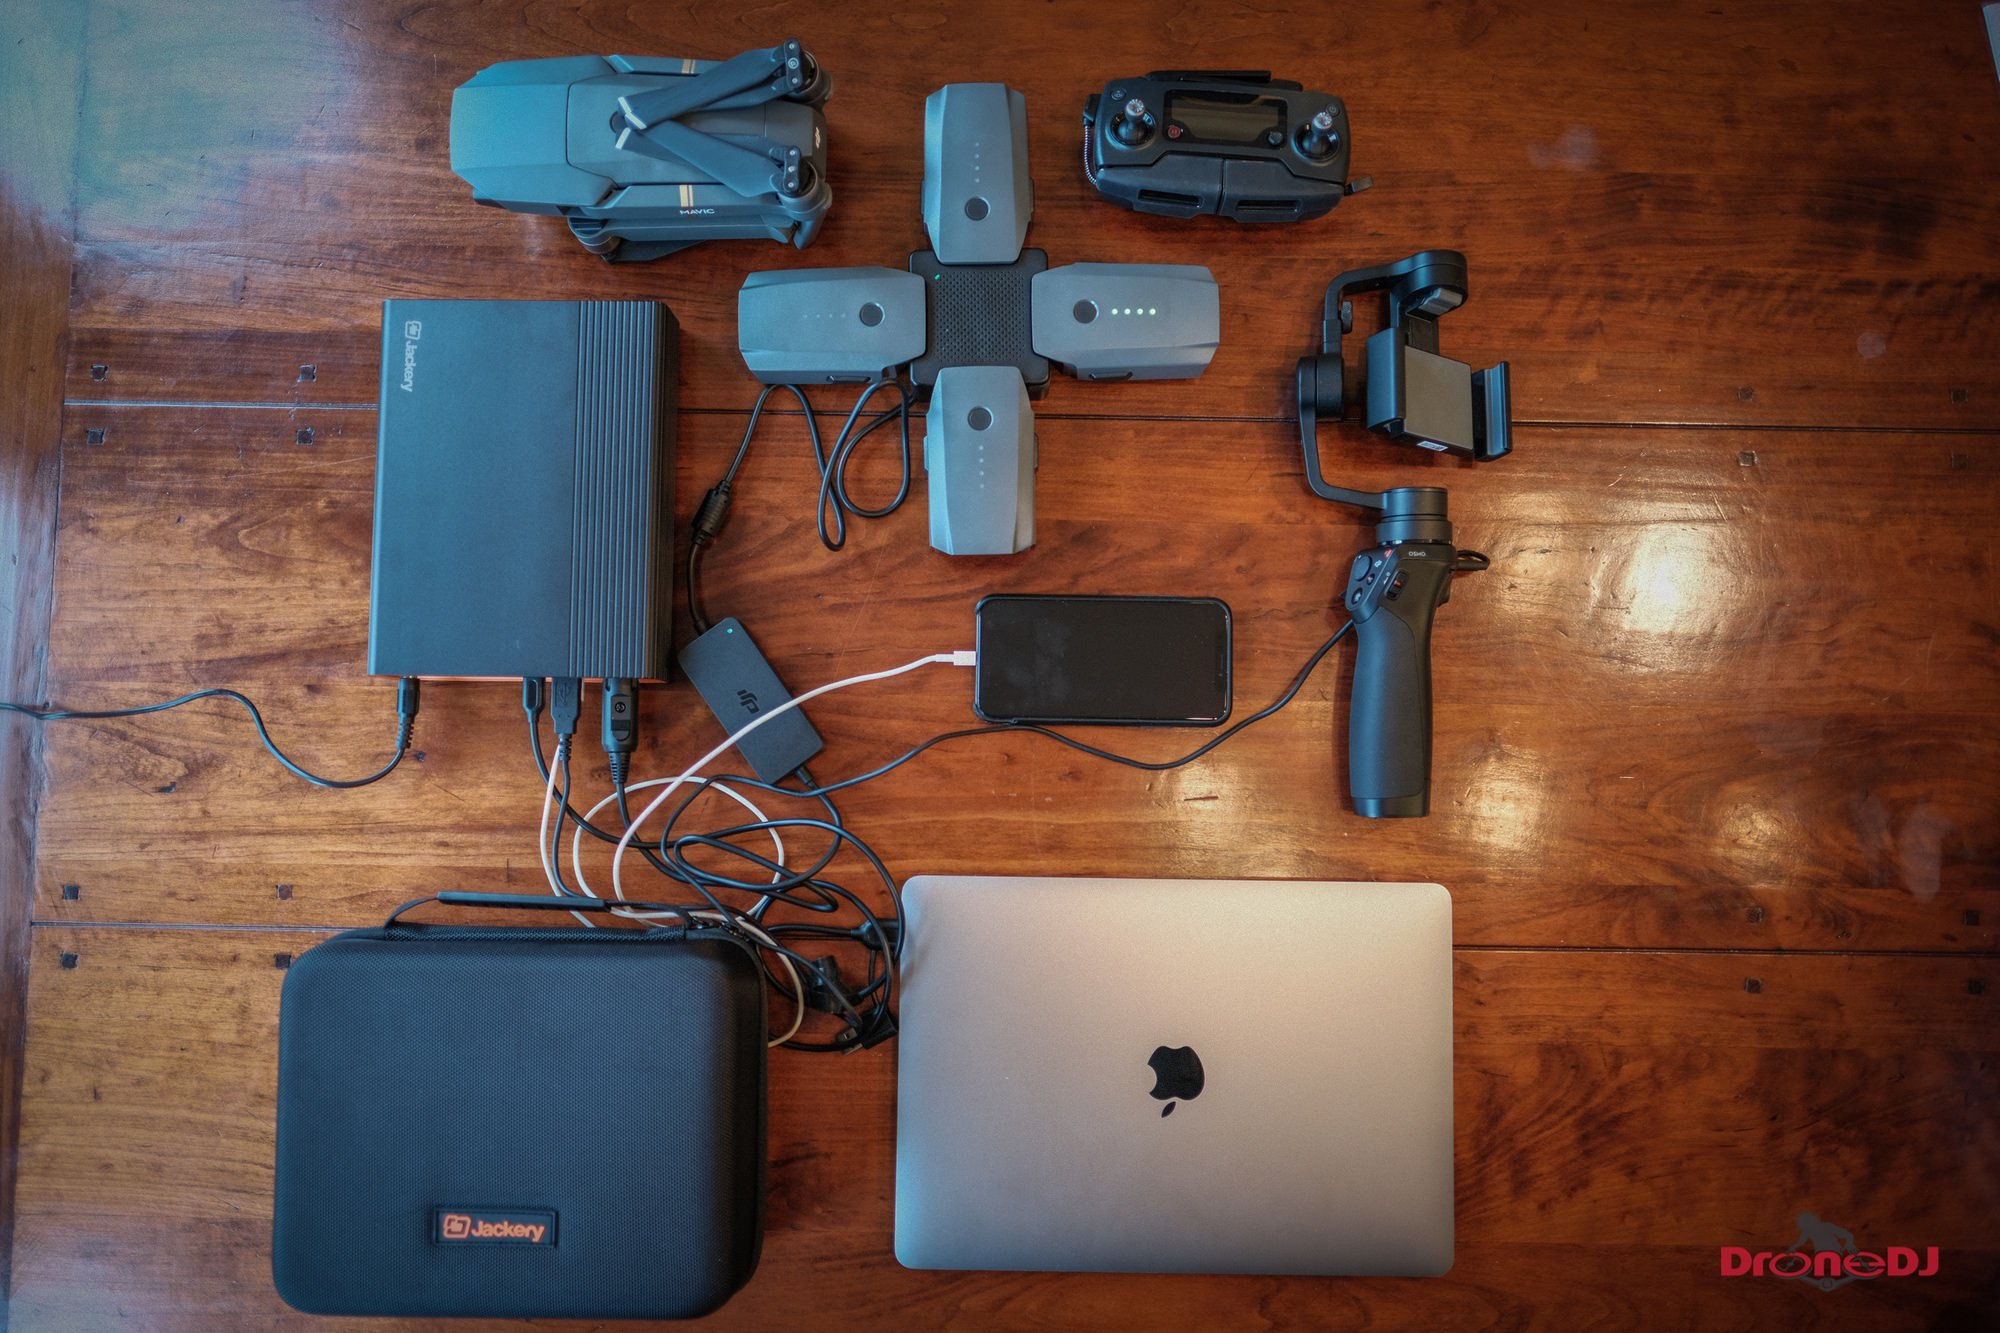 The Jackery Explorer 200 delivers outdoor portable power for electronic devices (1 of 7)